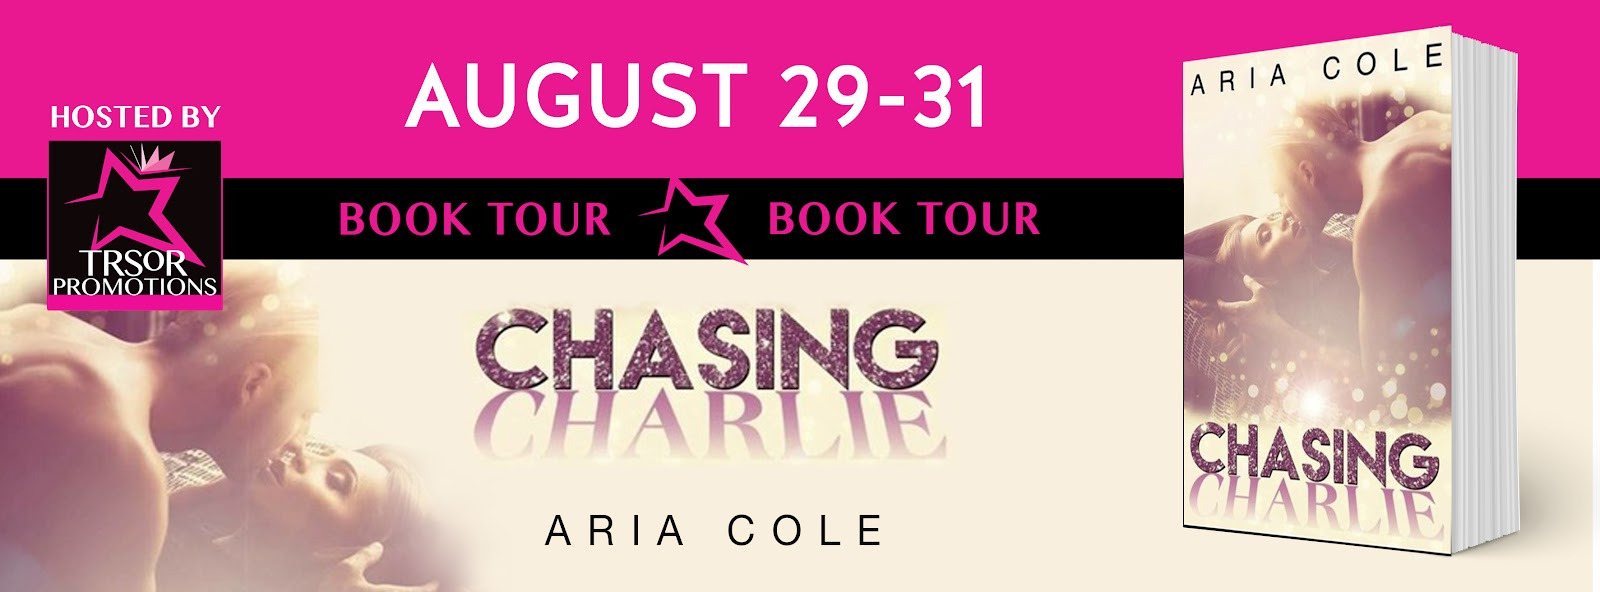 CHASING_CHARLIE_BOOK_TOUR.jpg